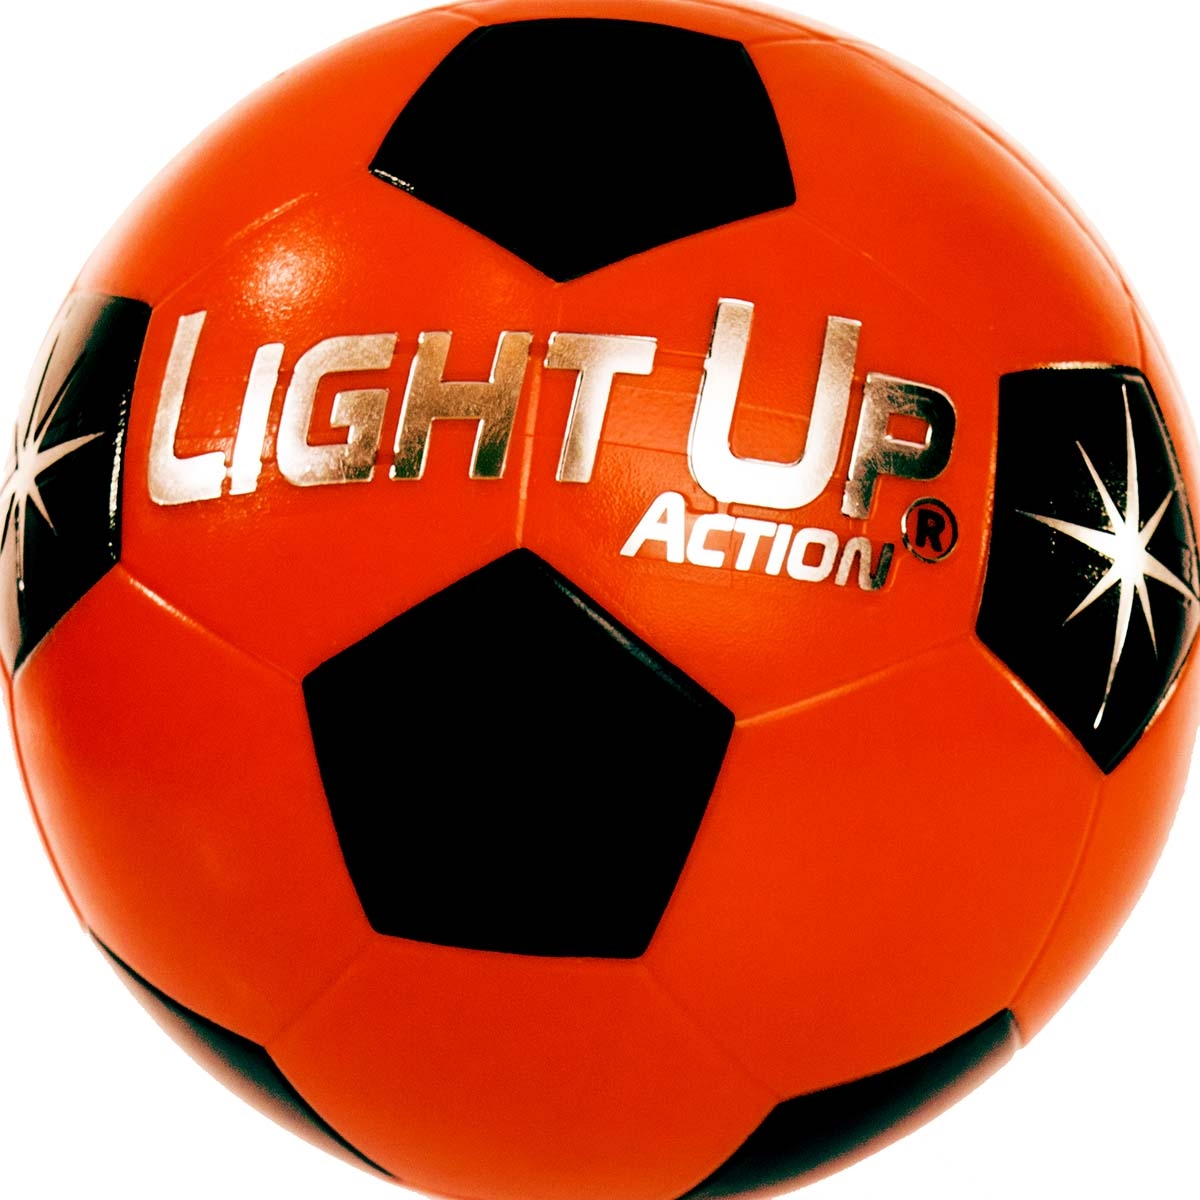 light up action soccer ball silver edition